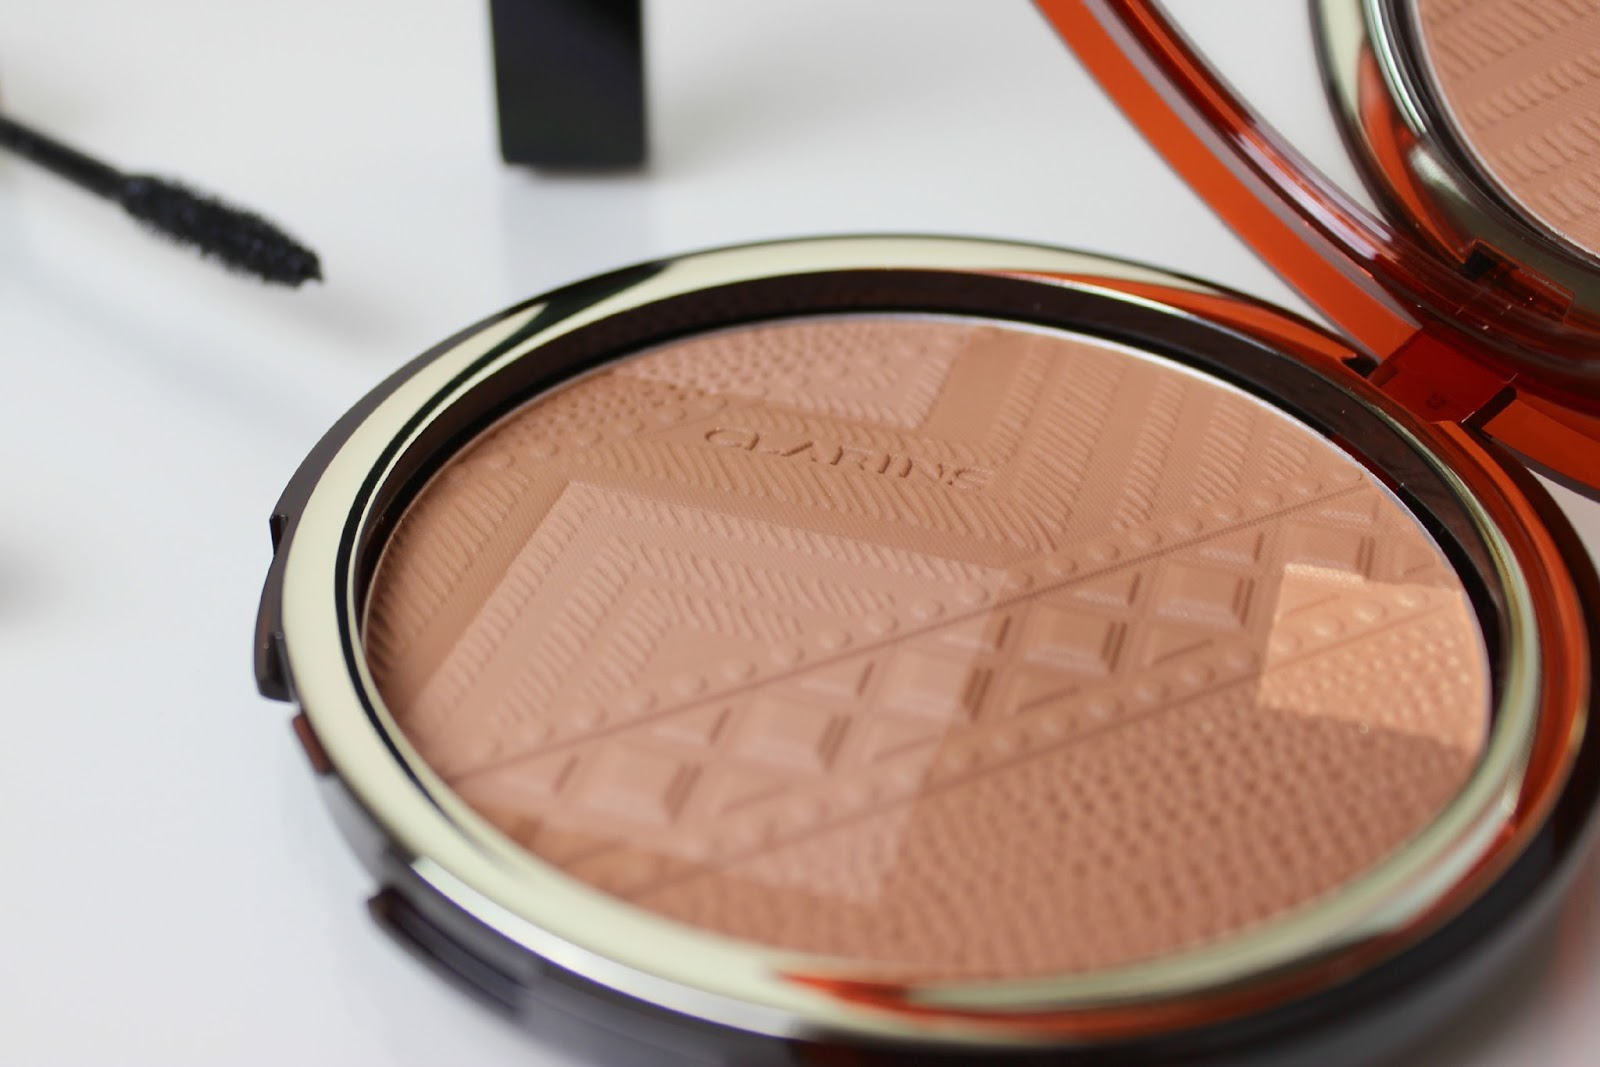 A picture of the Clarins Colours of Brazil Summer Bronzing Compact